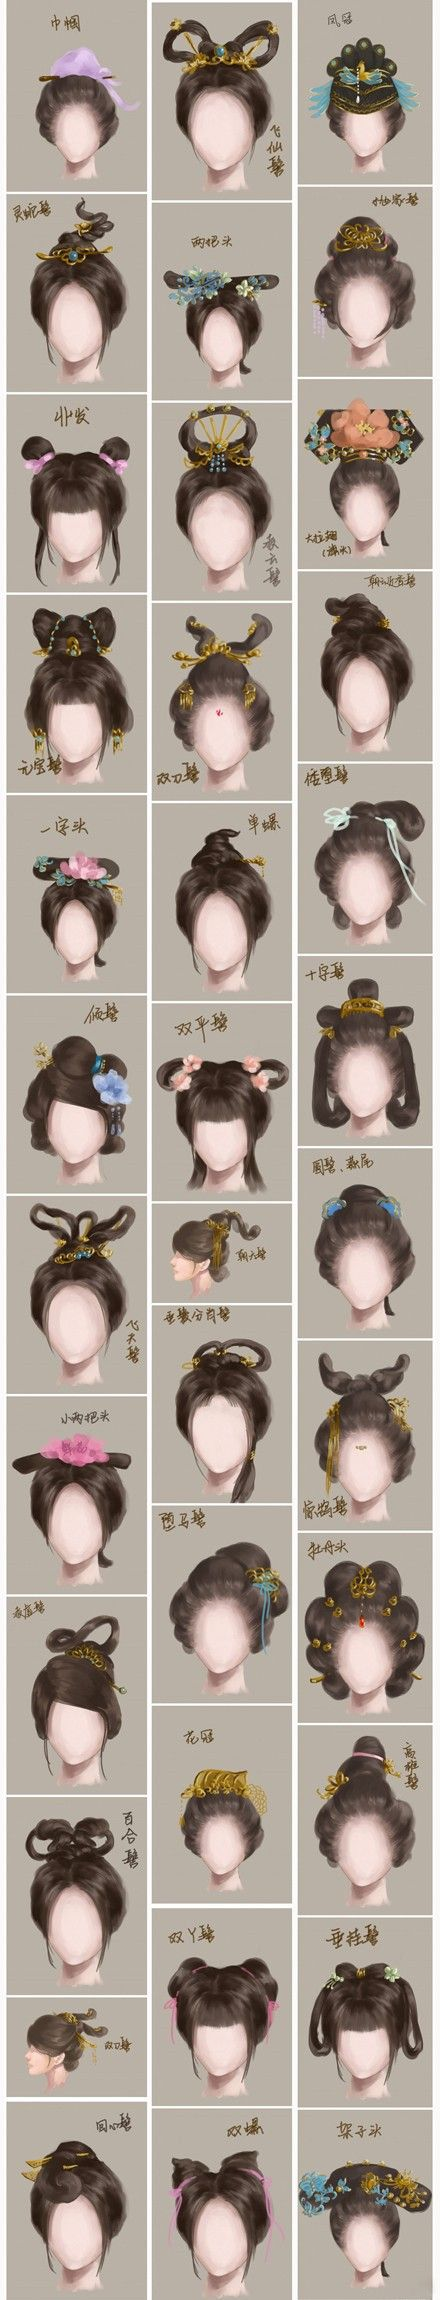 chinese princess hairstyles | beauty | historical hairstyles